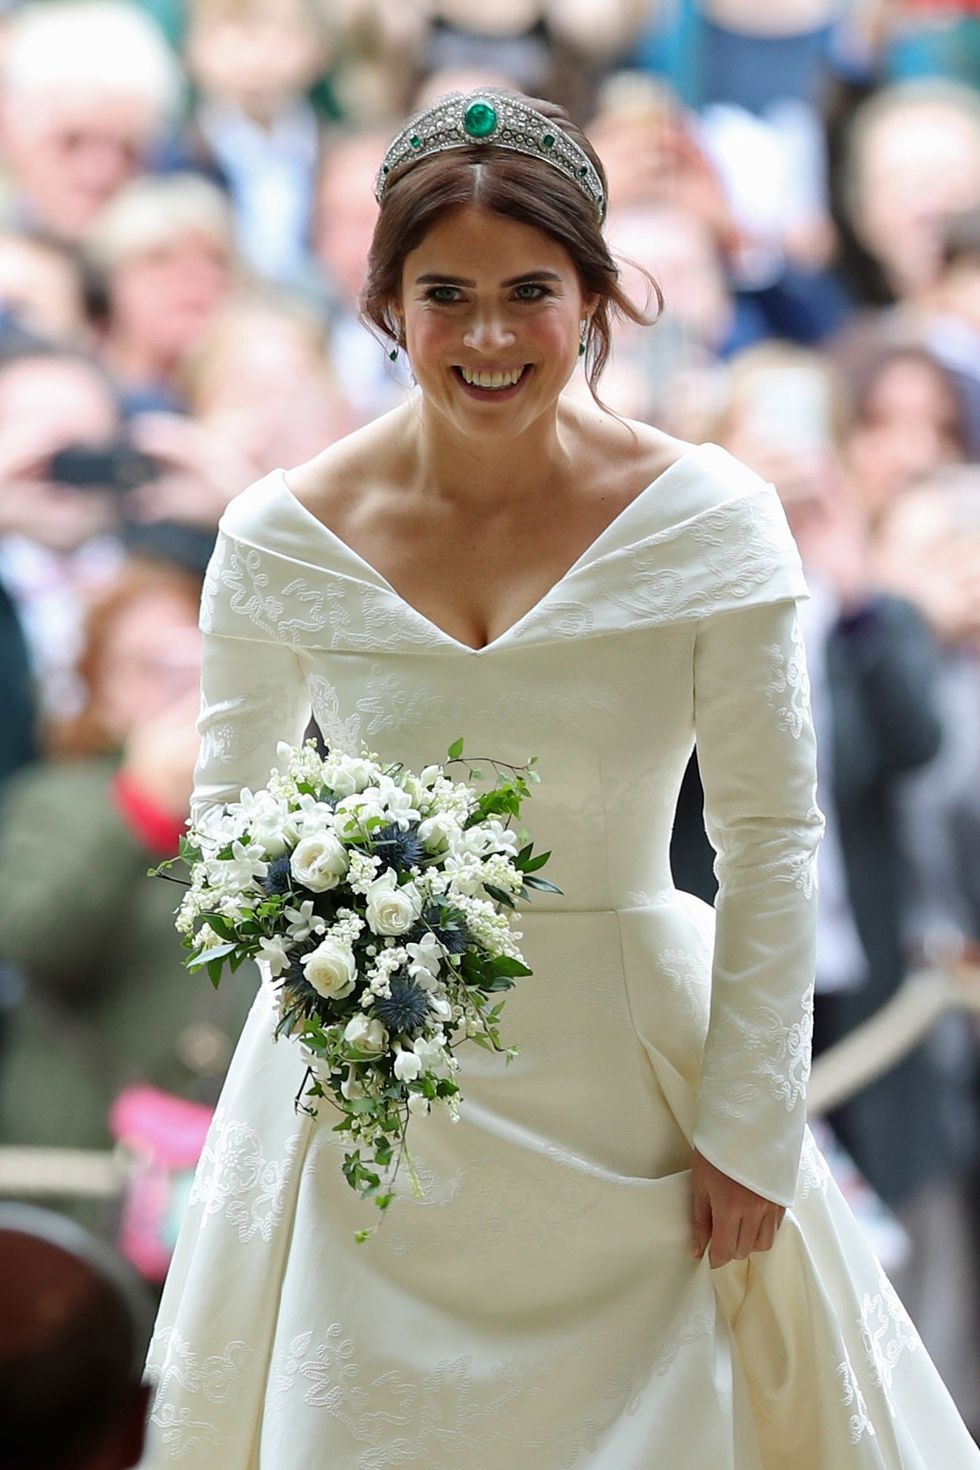 hbz-all-the-photos-princess-eugenie-wedding-gettyimages-1051951150.jpg